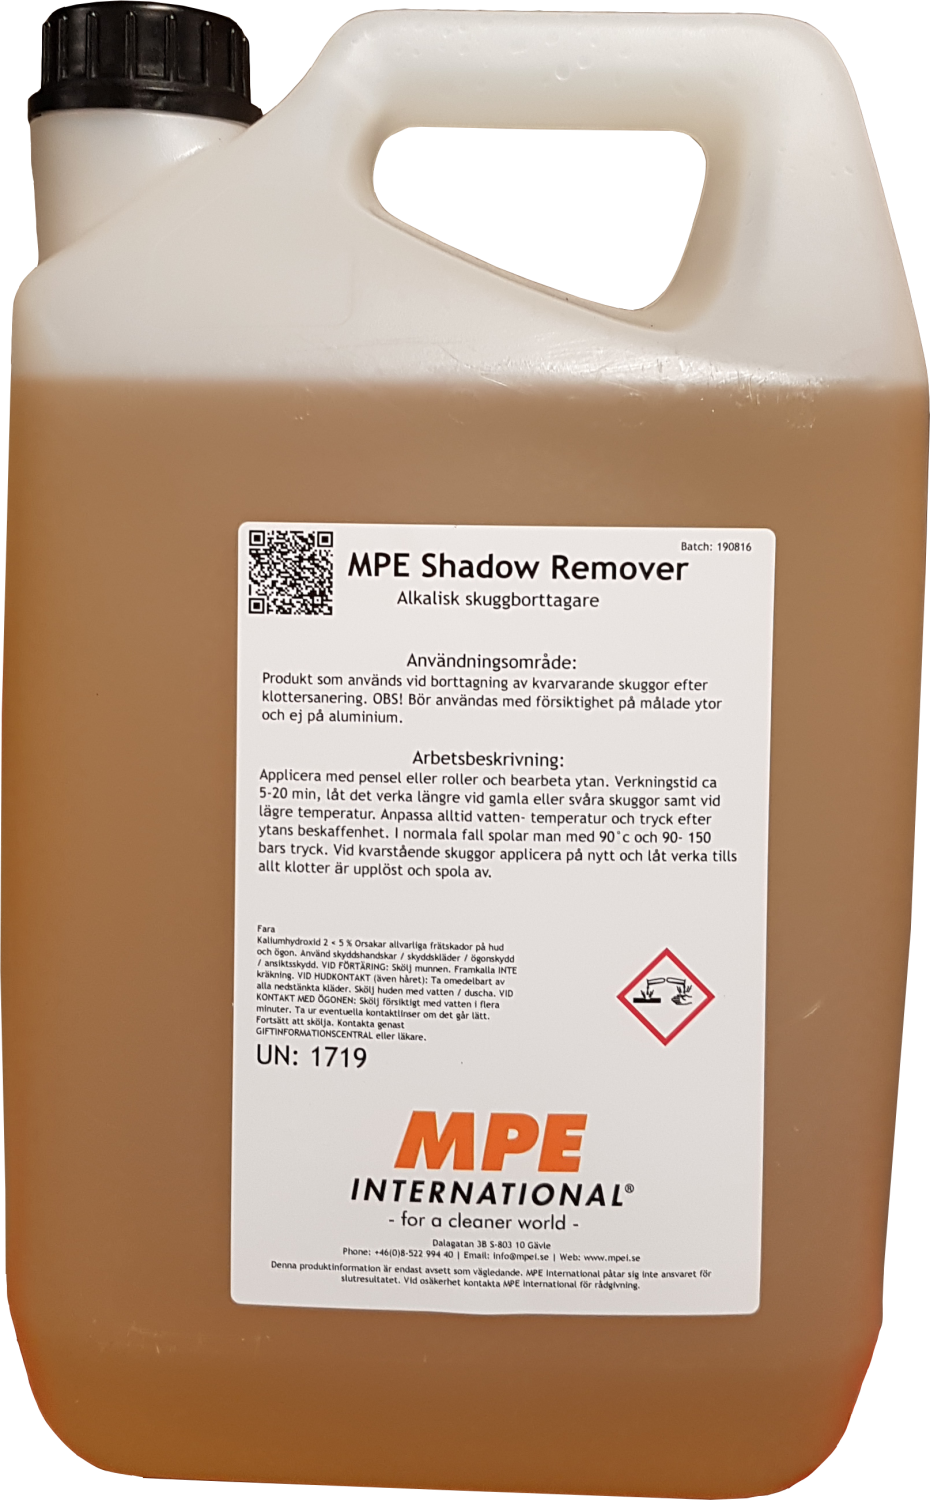 MPE Shadow Remover